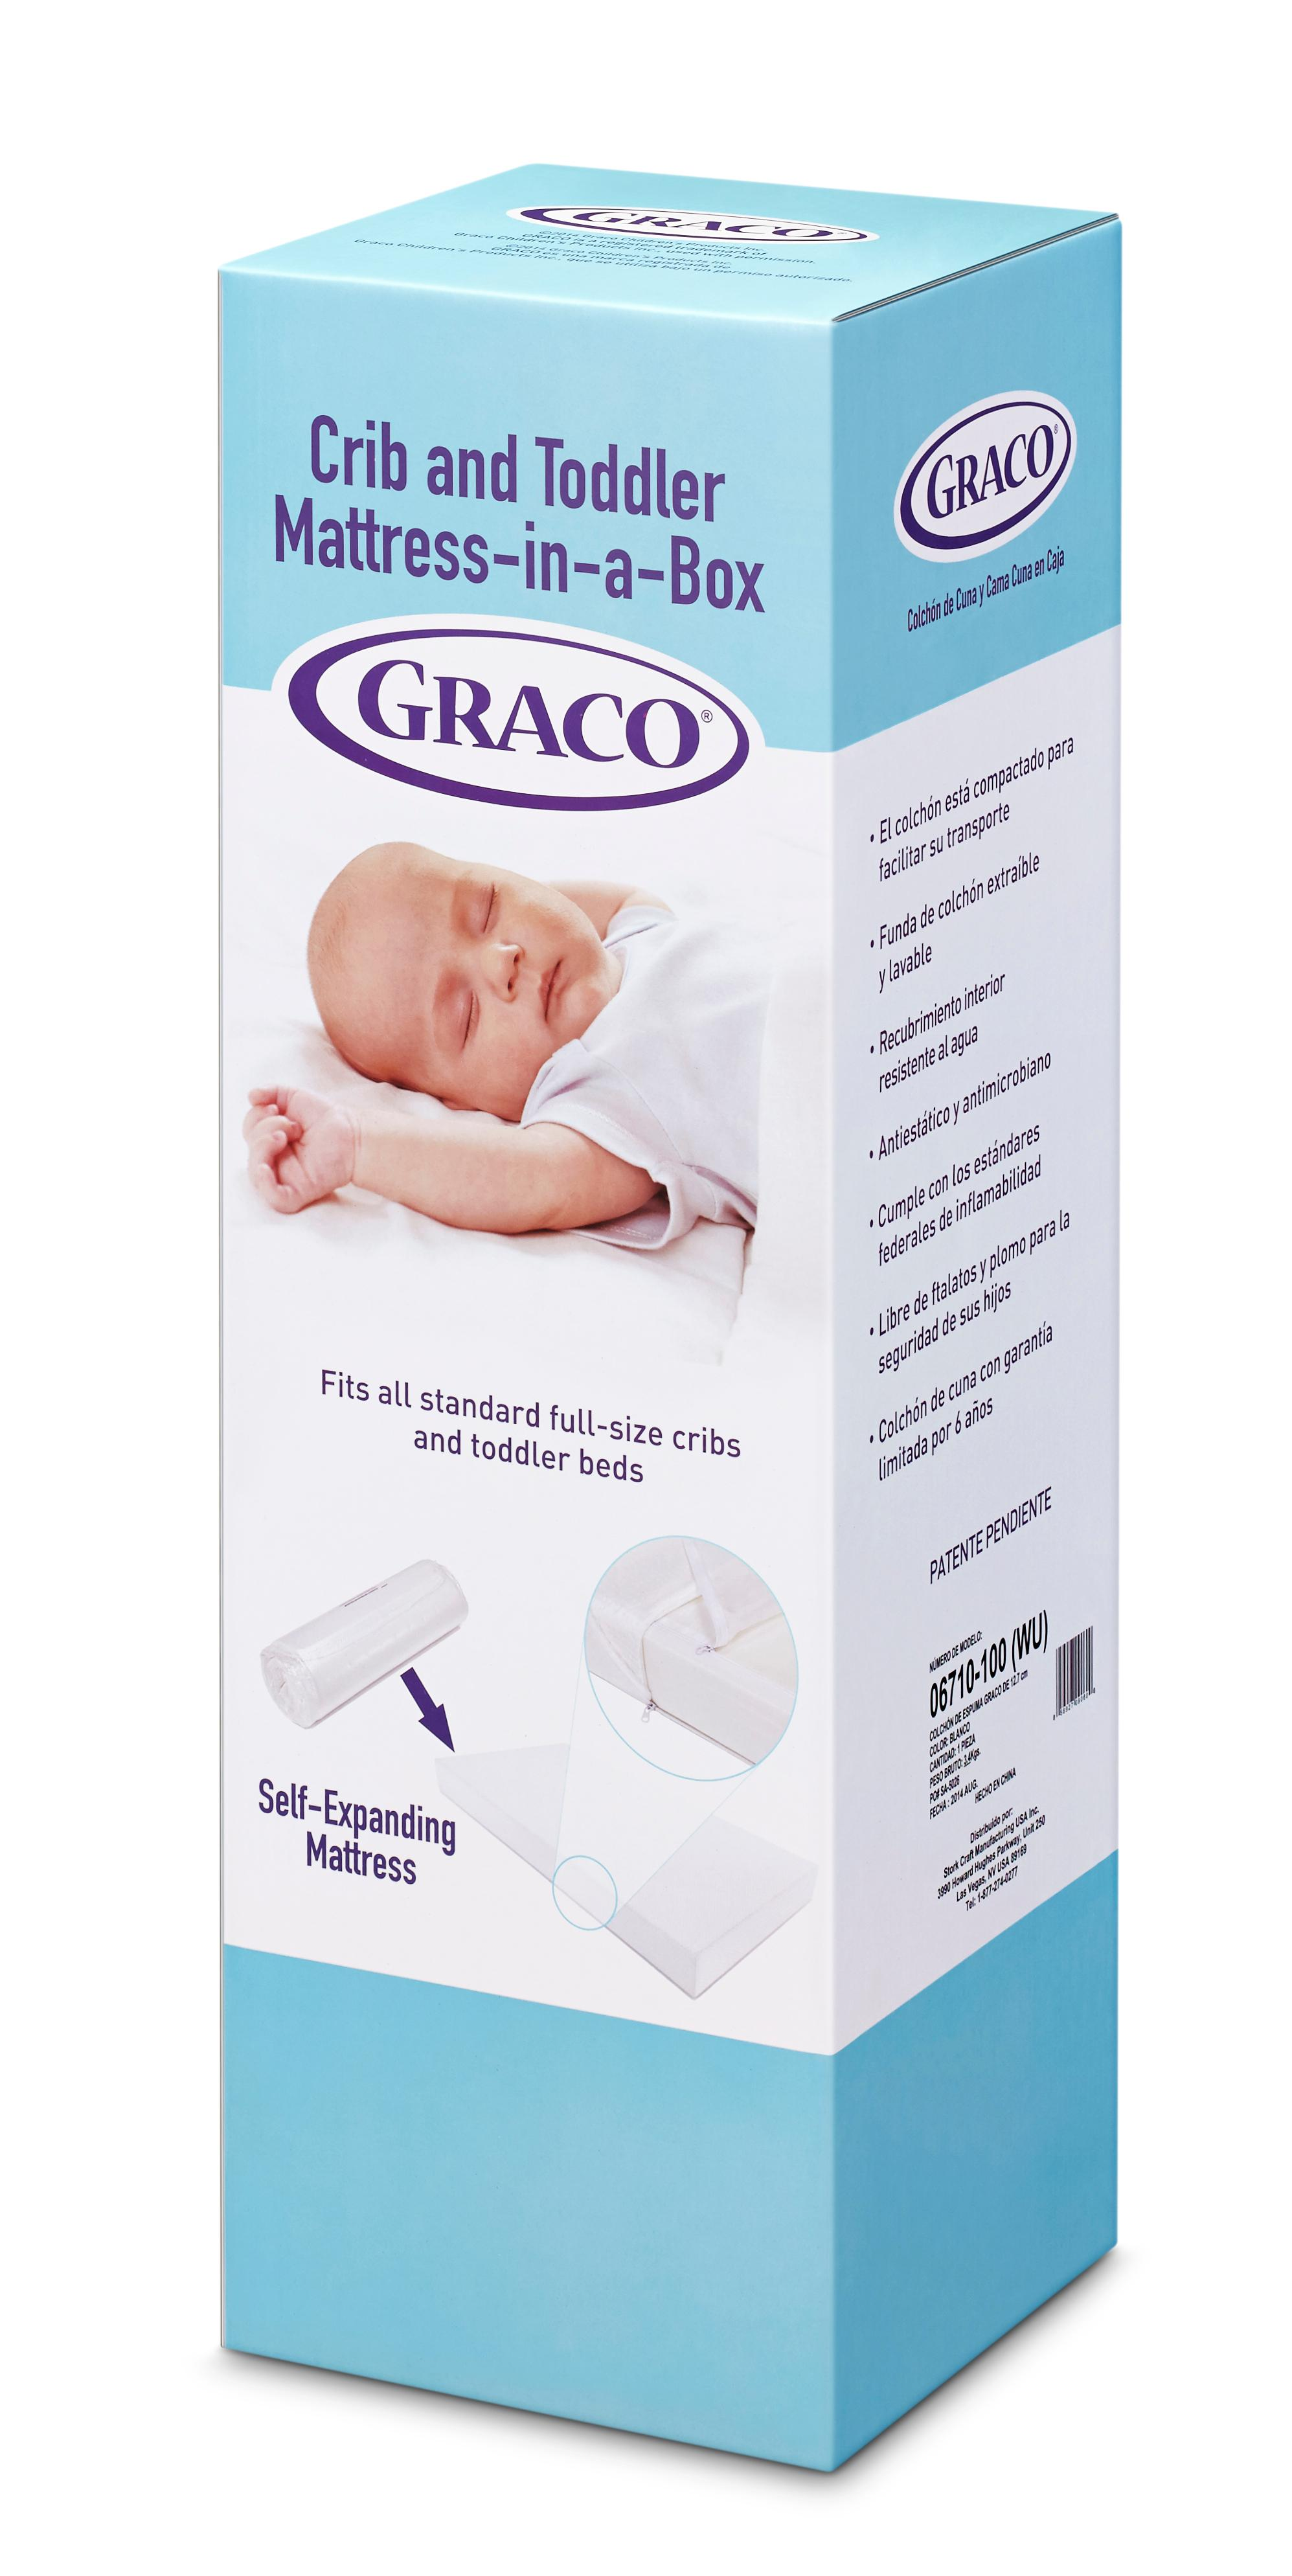 graco premium foam crib and toddler bed mattress standard and full sized baby. Black Bedroom Furniture Sets. Home Design Ideas